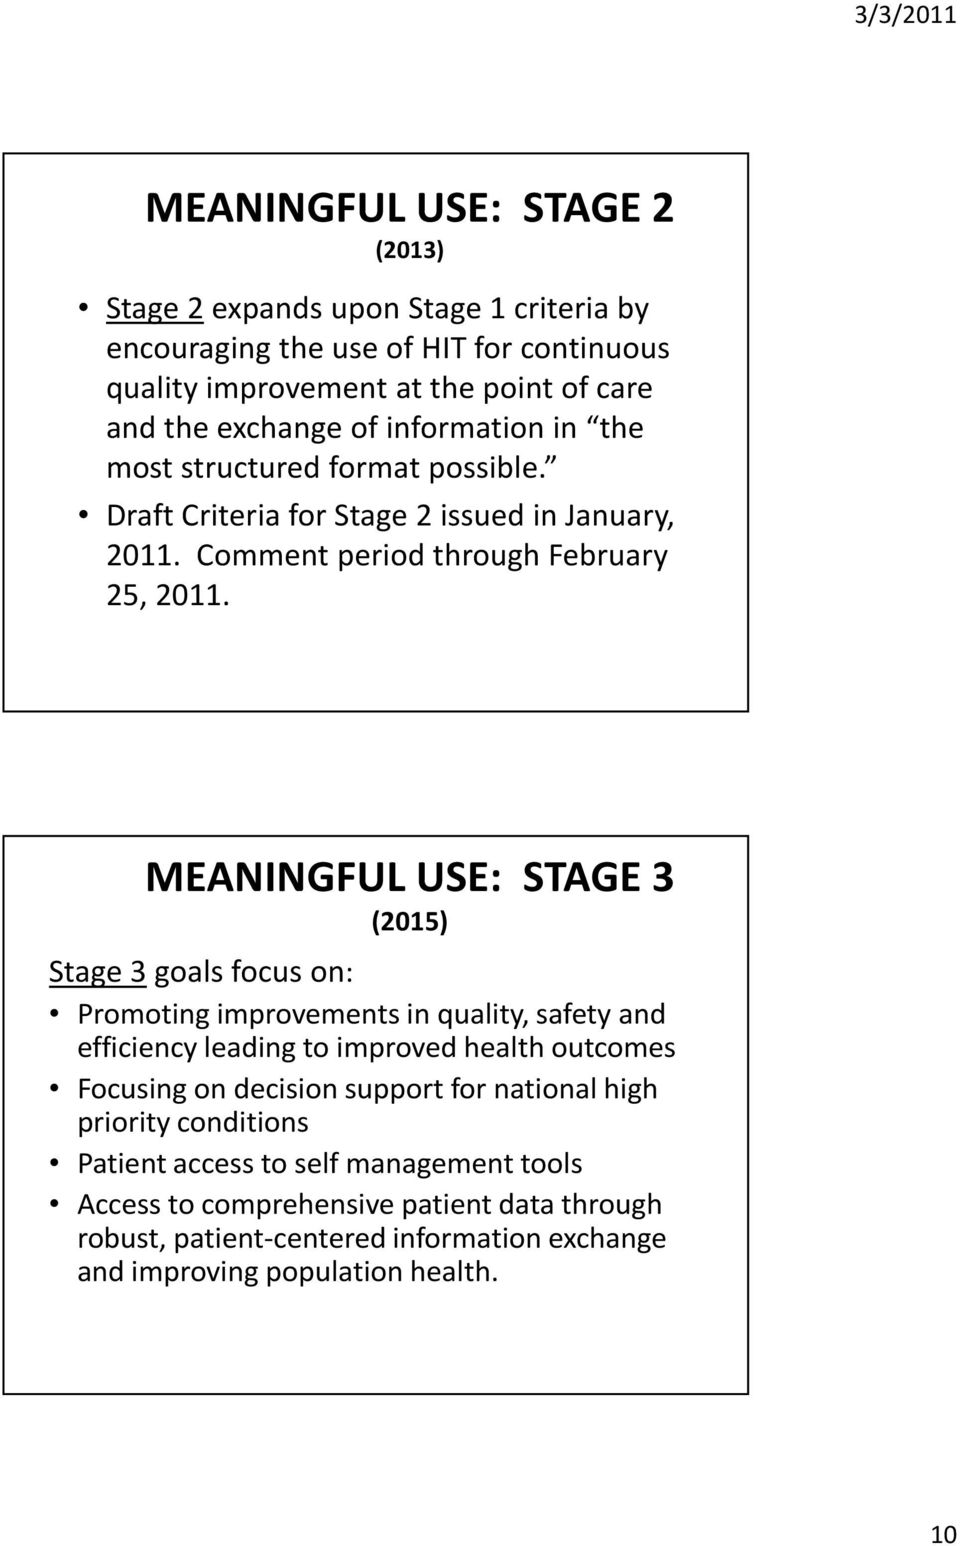 MEANINGFUL USE: STAGE 3 (2015) Stage 3goals focus on: Promoting improvements in quality, safety and efficiency leading to improved health outcomes Focusing on decision